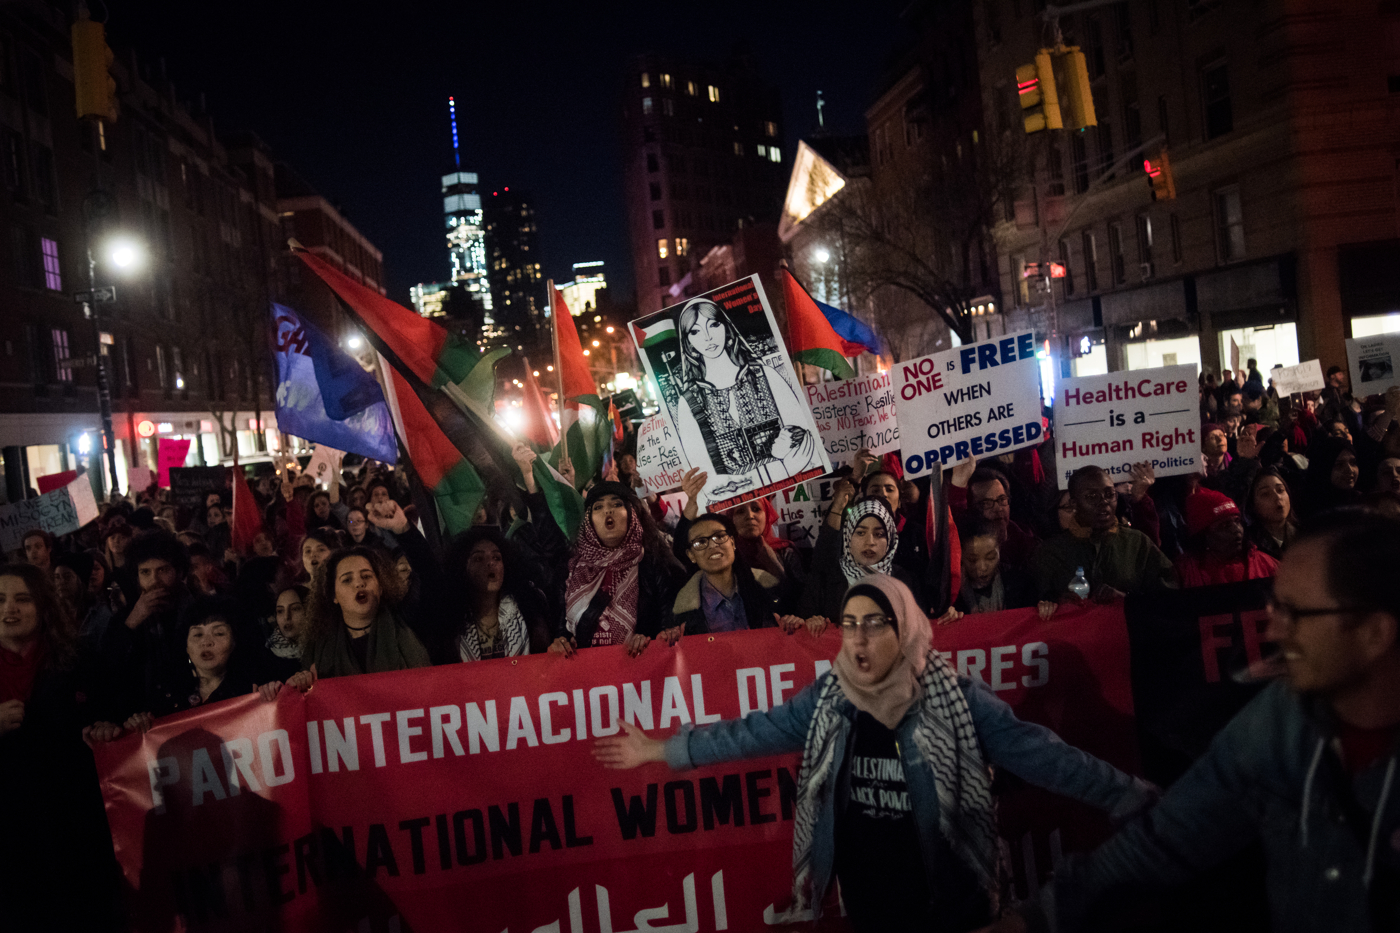 People march down the street after an International Women's Day rally at nearby Washington Square Park in New York, NY on March 8, 2017. CREDIT: Mark Kauzlarich for CNN